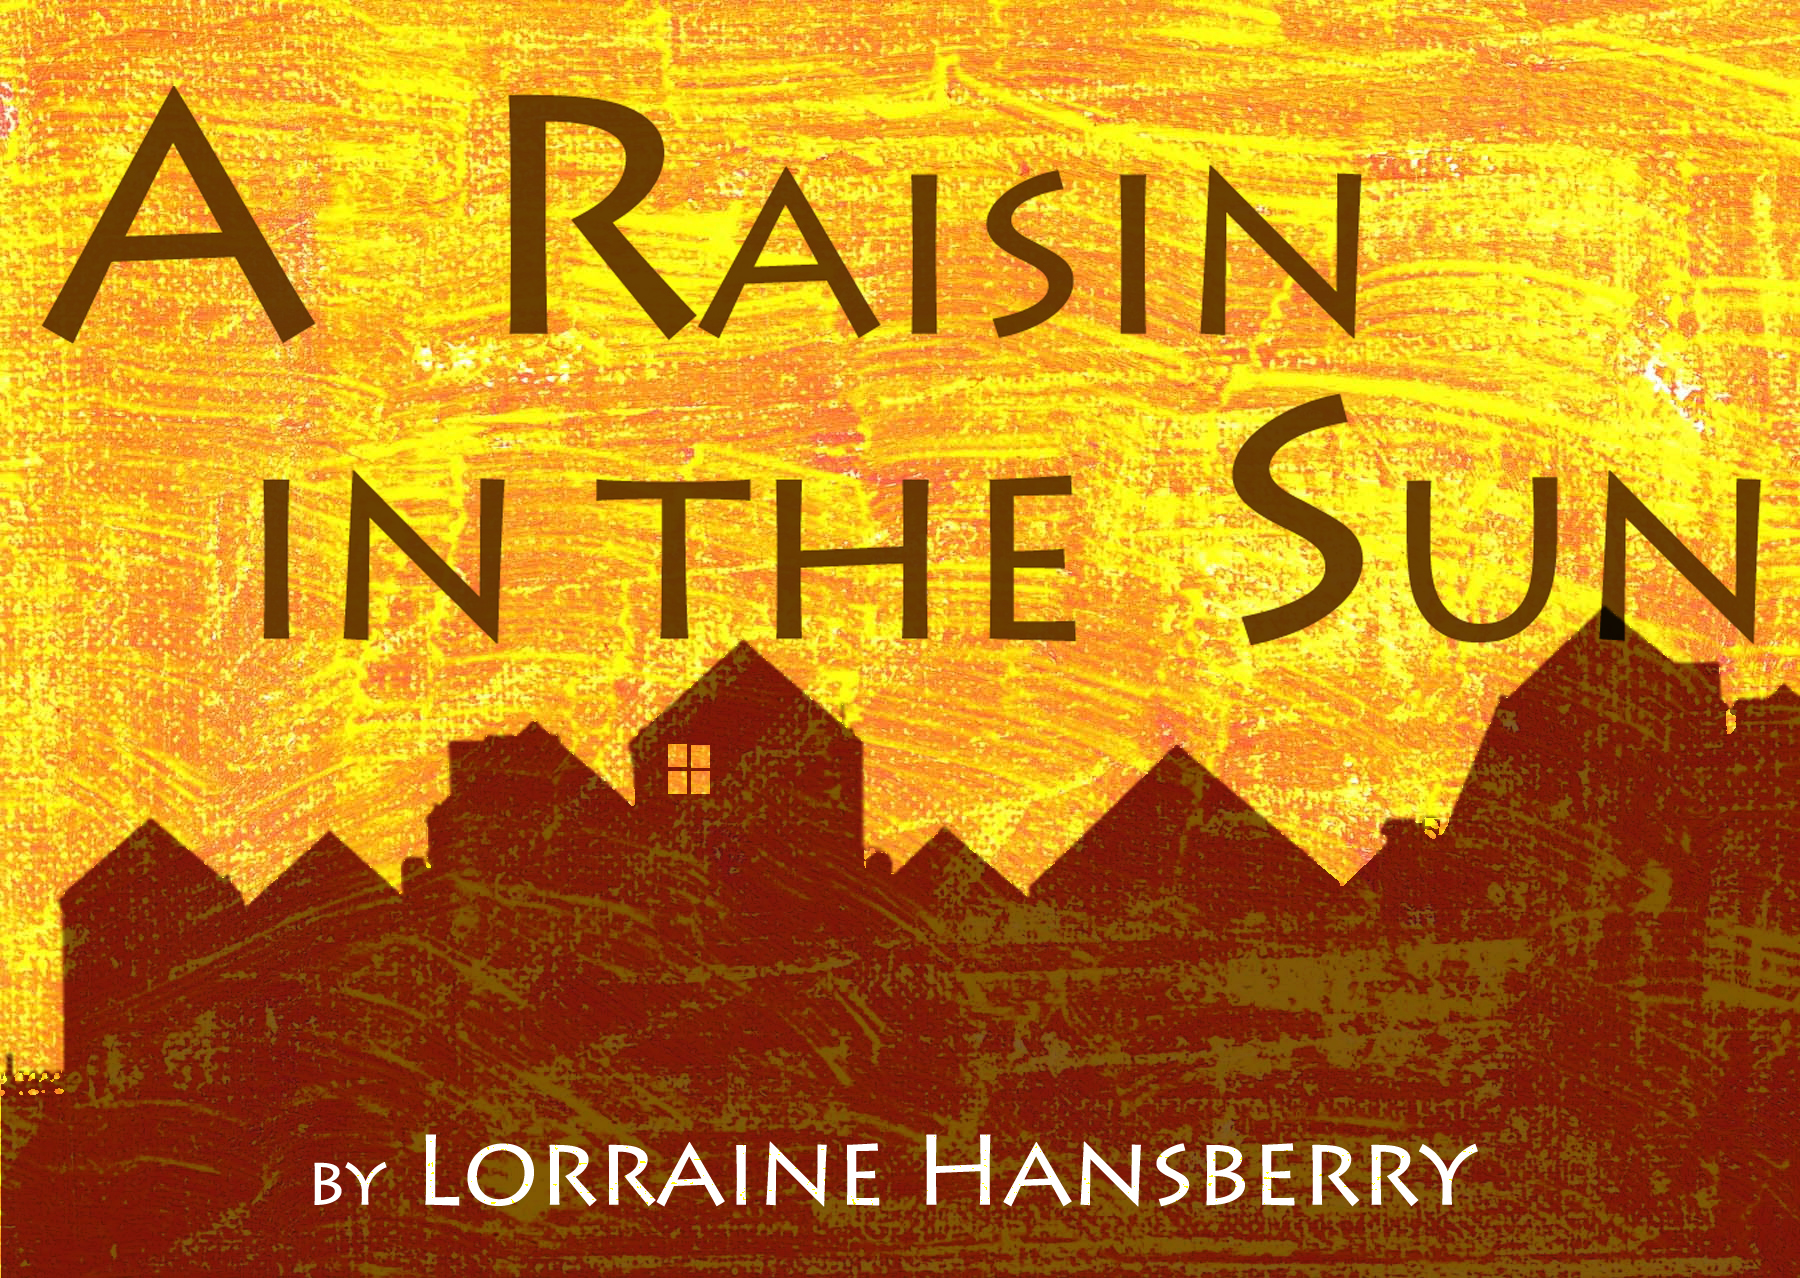 raisin in the sun race relations In connection with detroit's history of impact from race relations, urban renewal, and gentrification and in honor of lorraine hansberry's a raisin in the sun.